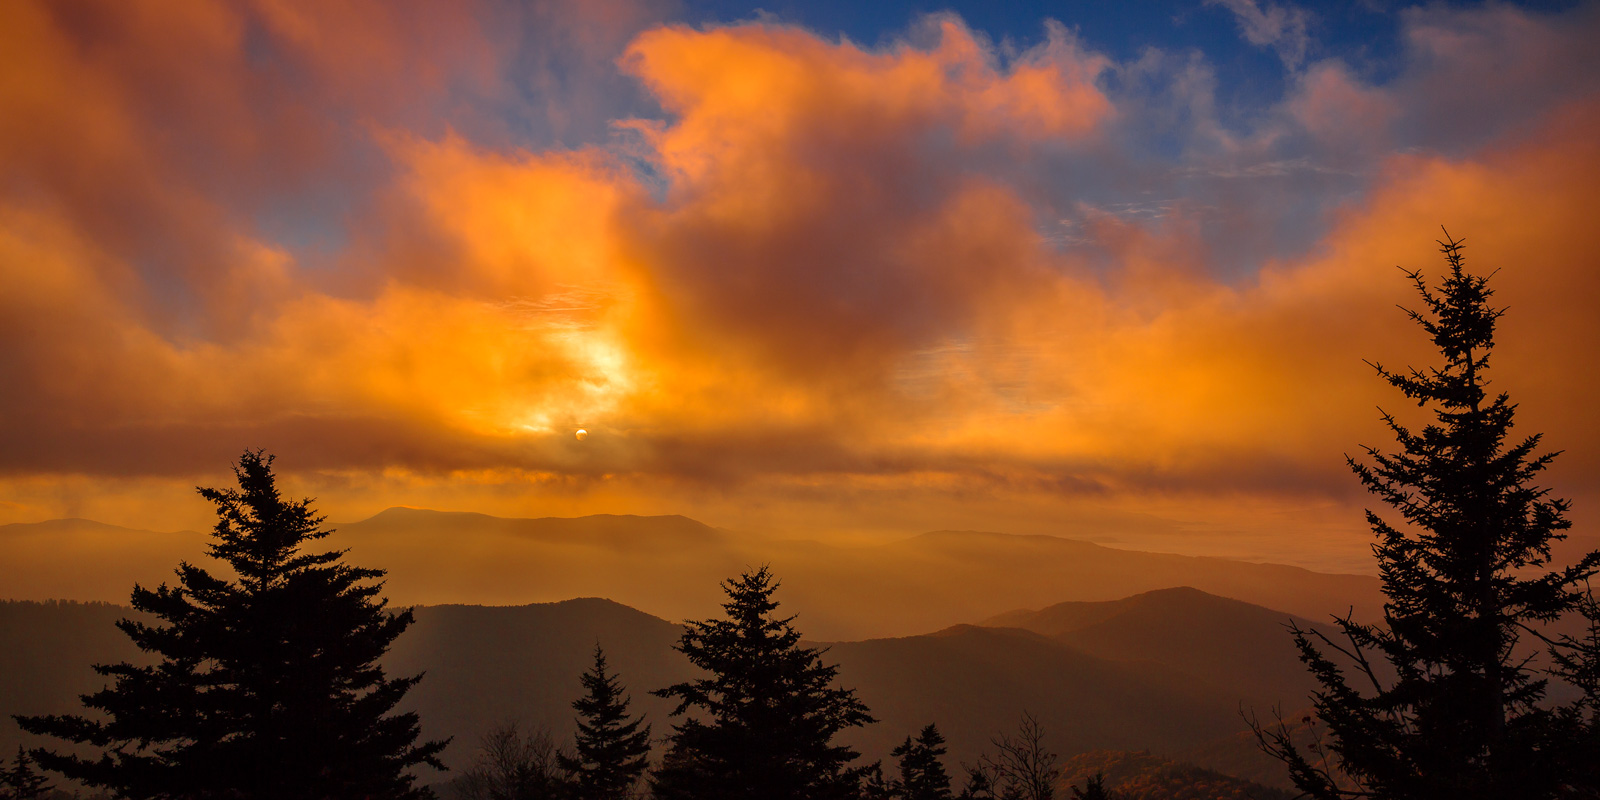 A Limited Edition, Fine Art photograph of the sun bursting through the clouds during beautiful sunrise at Clingman's Dome in...